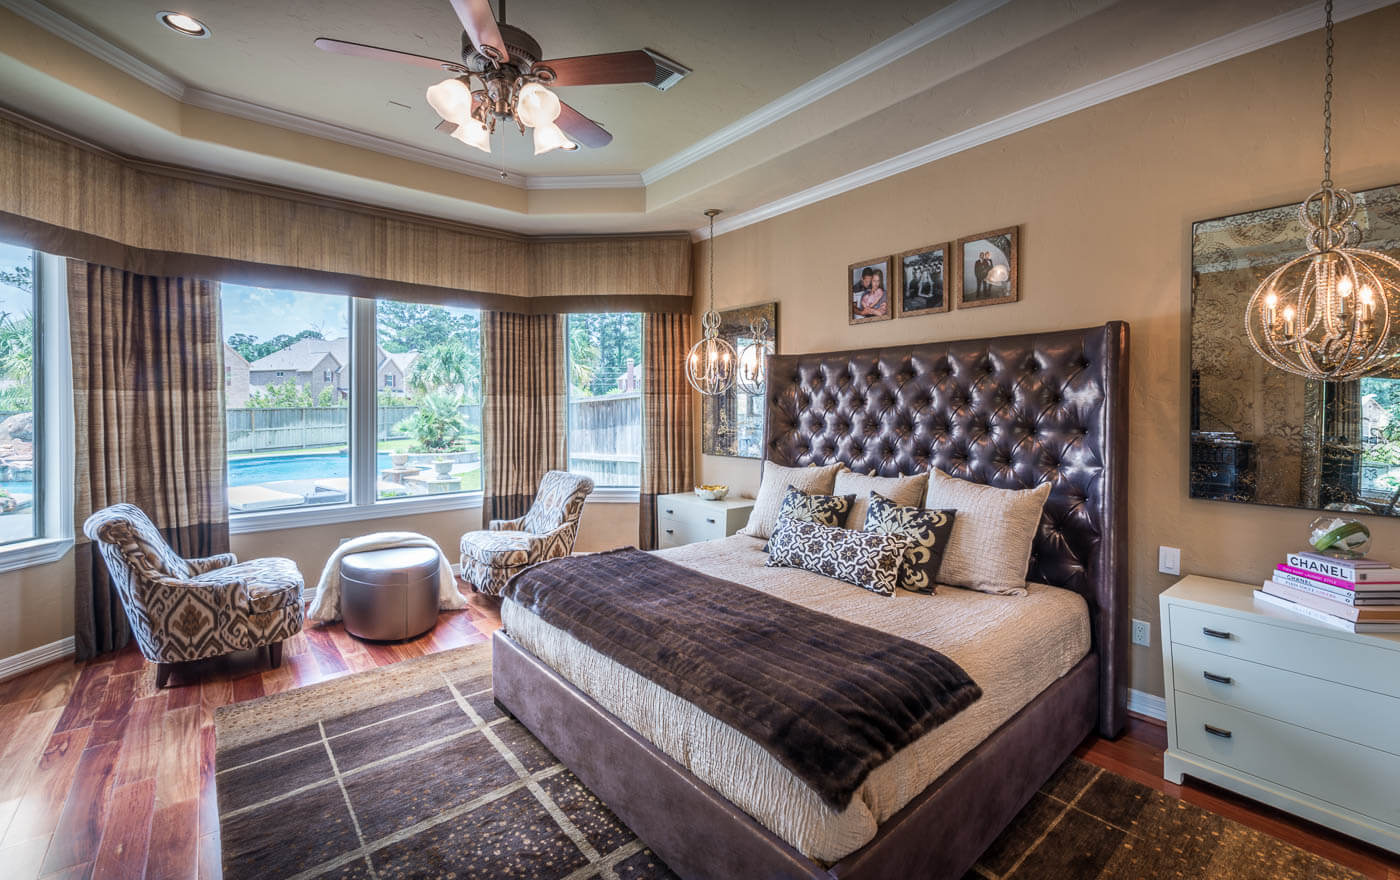 Bedroom designs top designers worldwide. In this photo you can see a king size bed with a big leather headboard with dark and flooring. Also there is a sitting area with two comfortable chairs and a small coffee table.